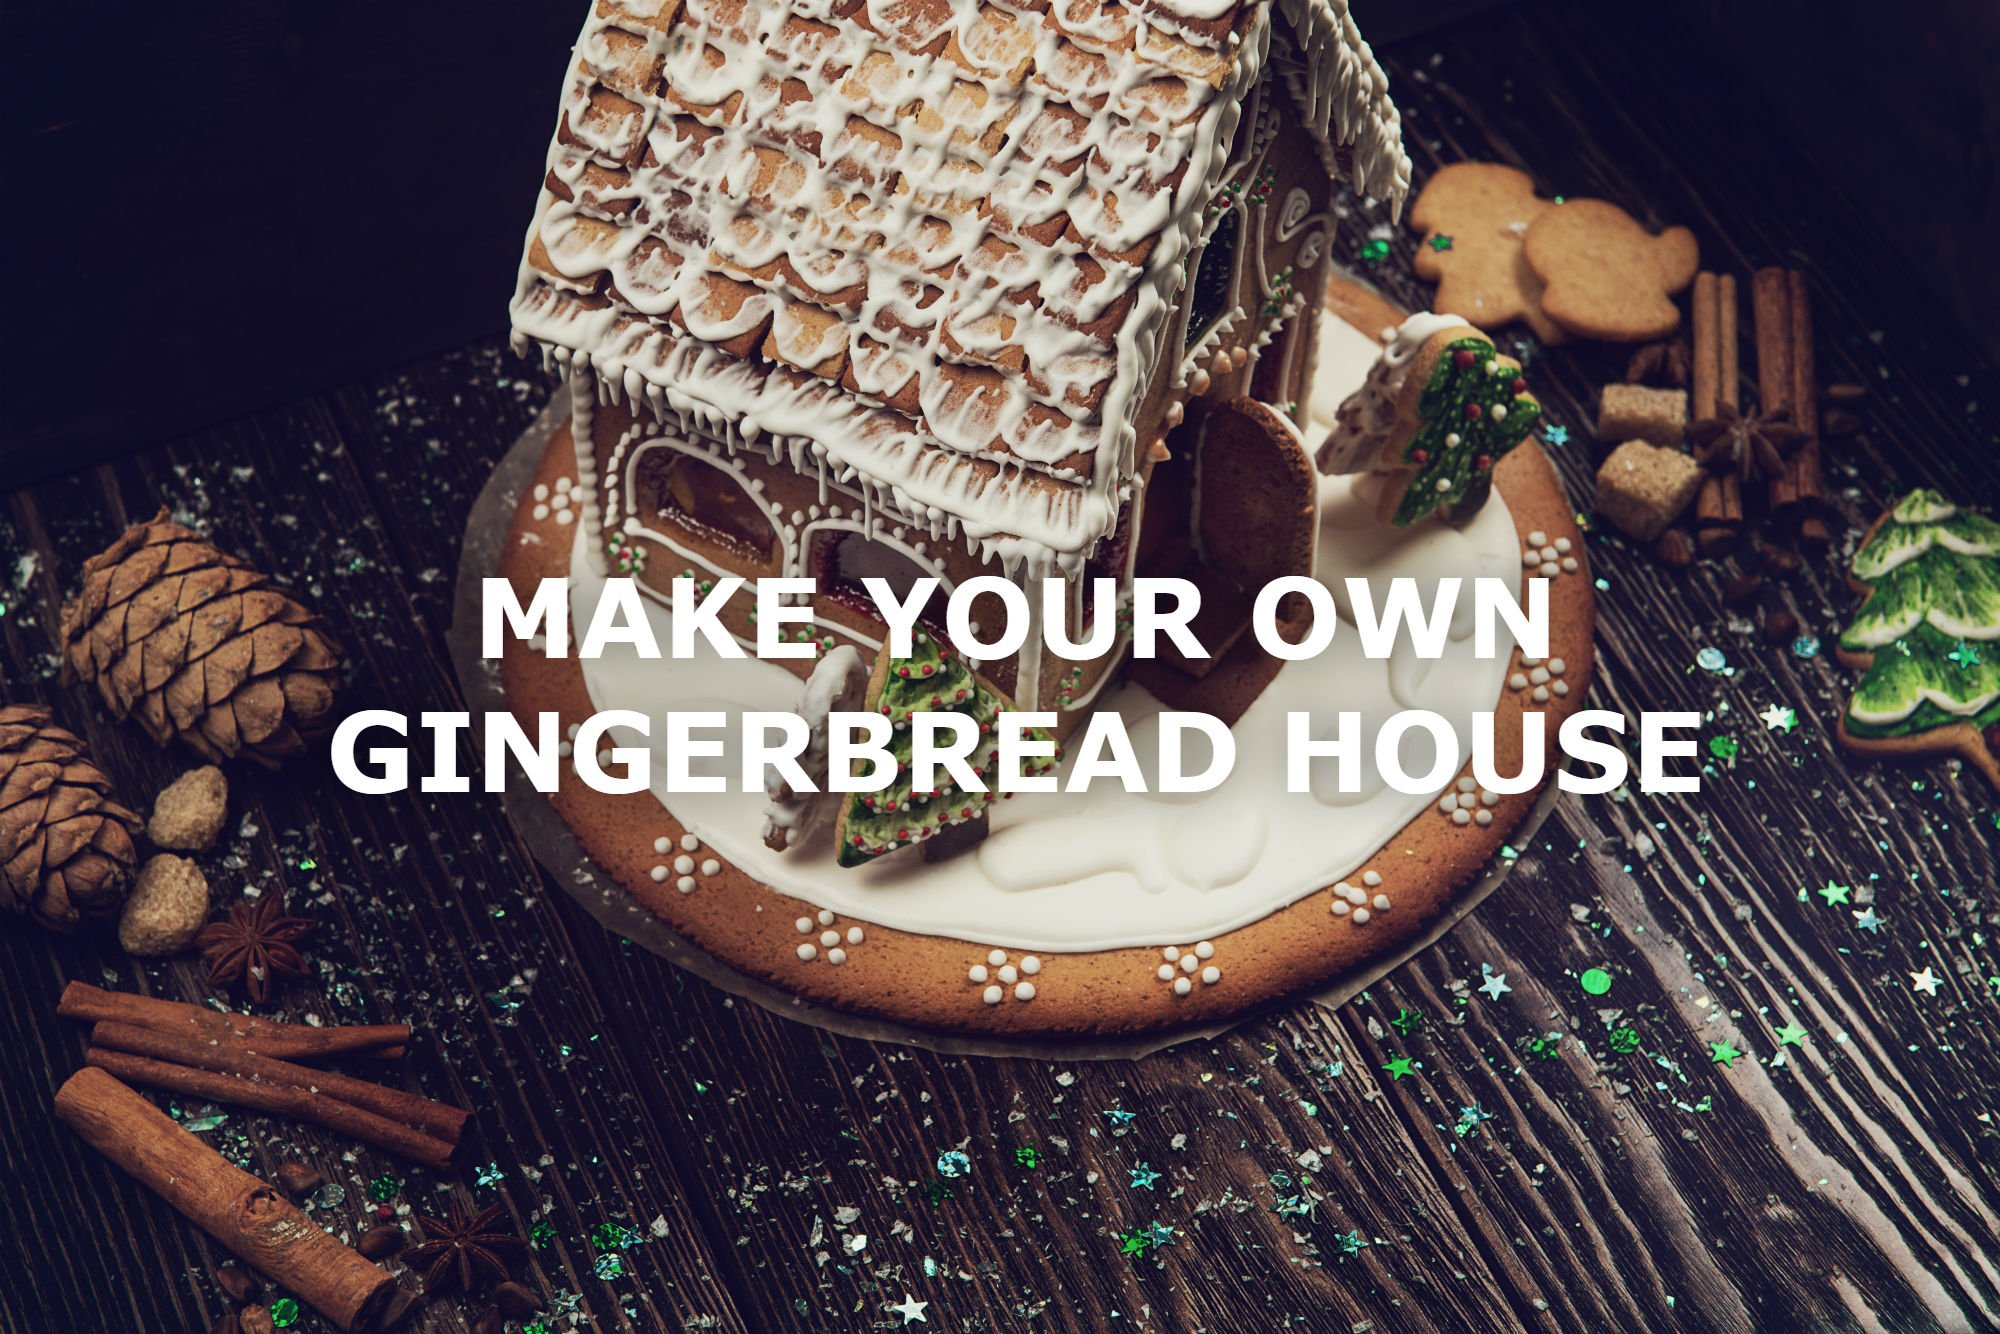 TIPS FOR A FOOLPROOF DIY GINGERBREAD HOUSE